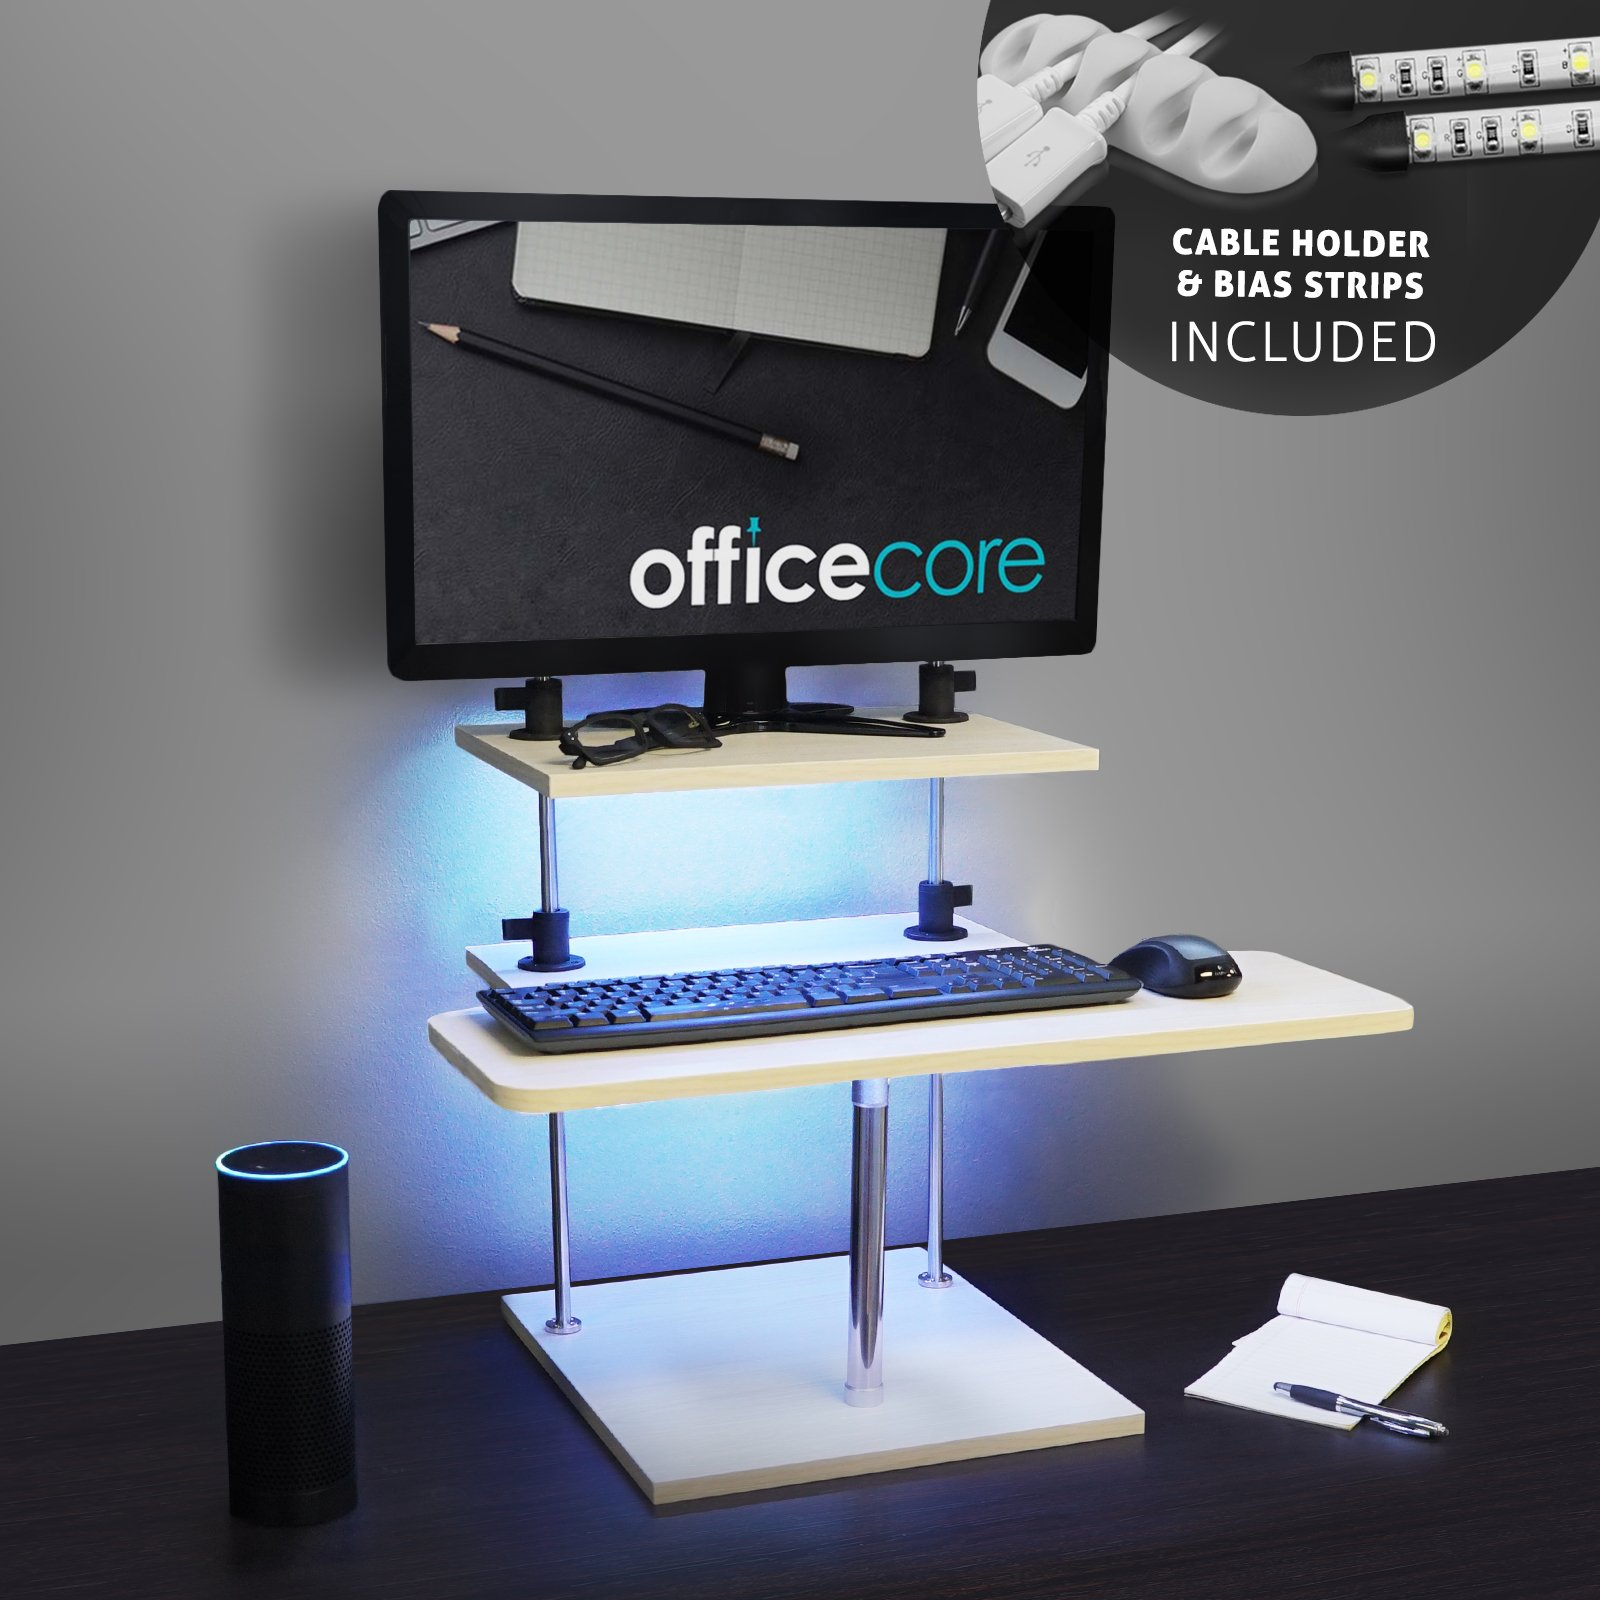 OfficeCore Standing Desk Wood Design with MultiColor LEDs for Laptop or Desk Top Computer - Office, Home, Work Station, Dorm Room - Height Adjustments Clamps Bar, Keyboard Tray, Monitor Stand, Manual